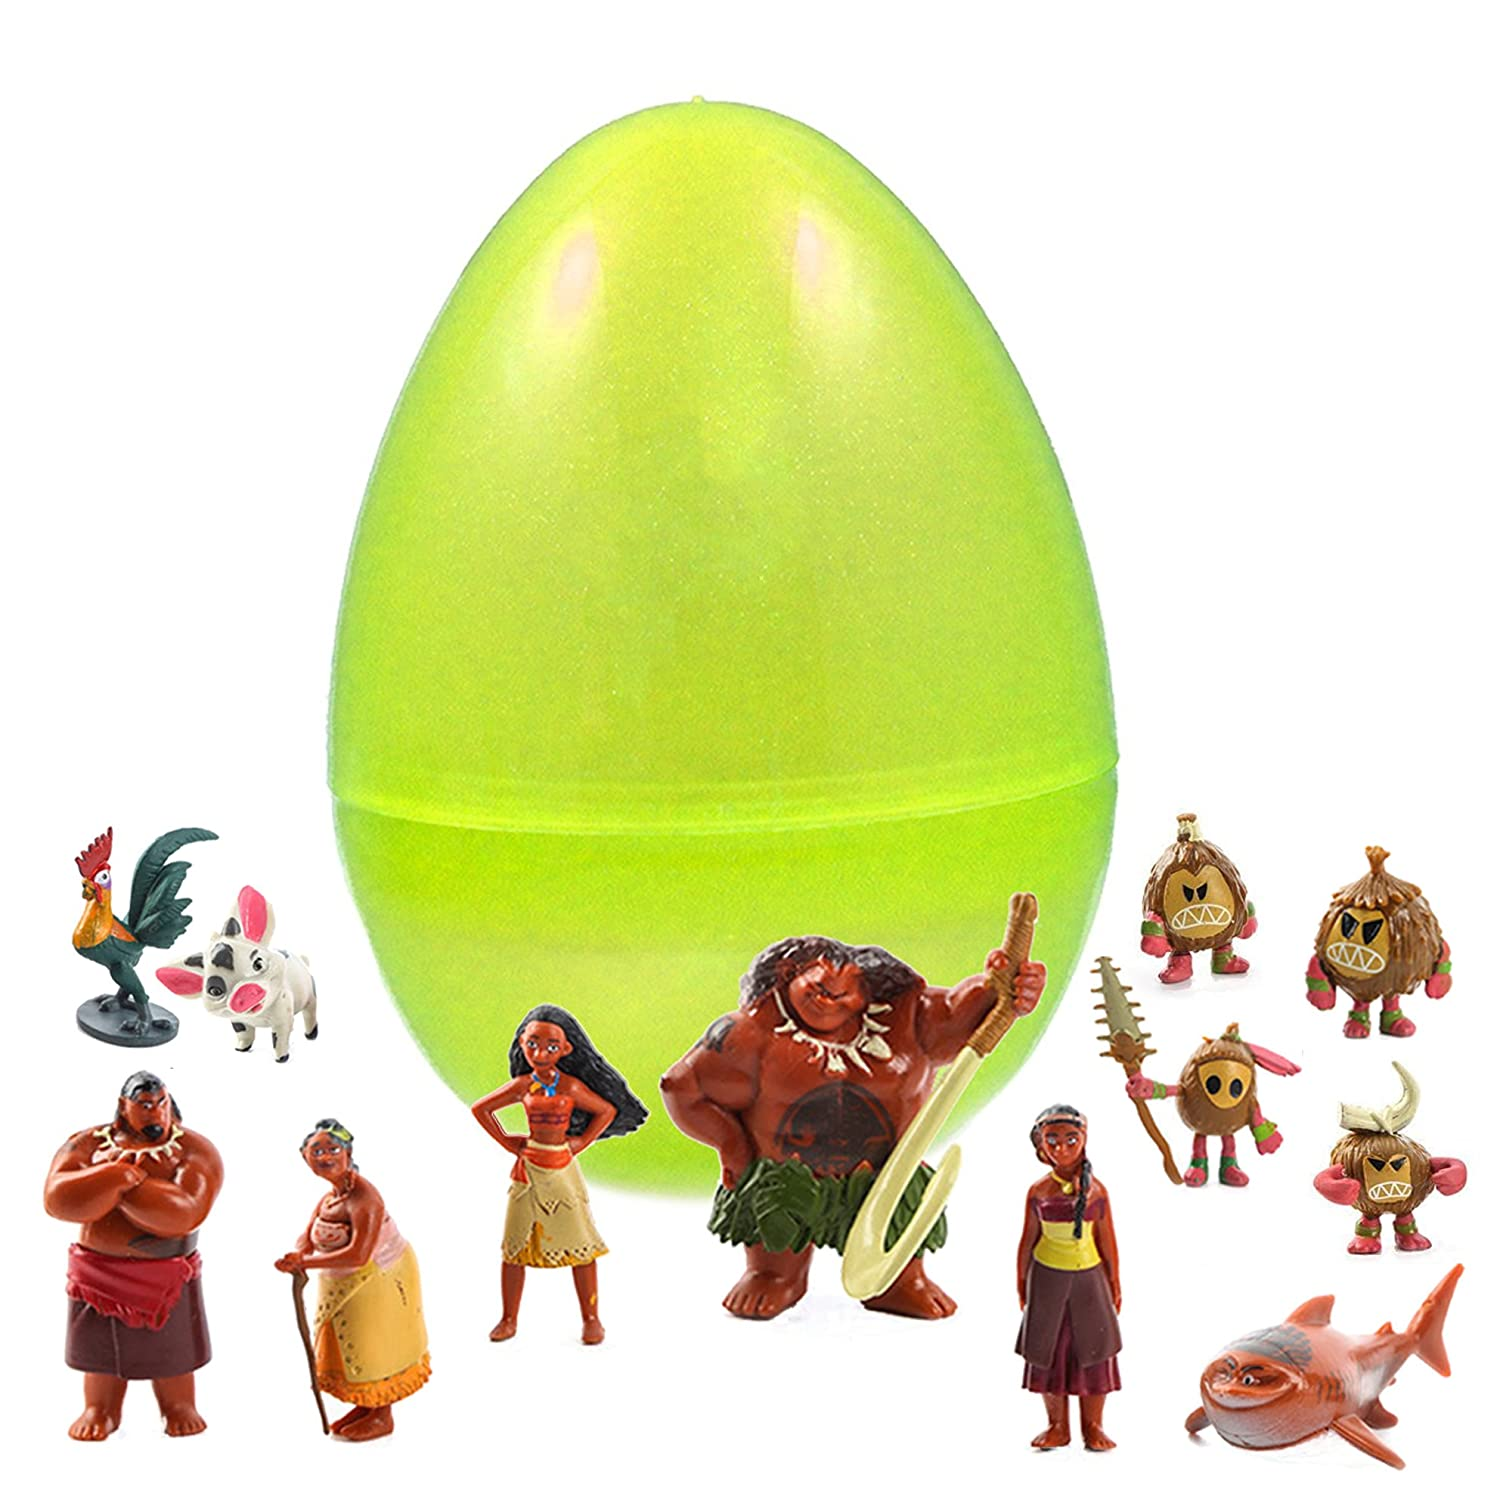 Baken 24 Figurines Toy Filled Jumbo Easter Egg Trolls Zootopia and More Assorted Fun Characters Great Party Favors Durable Toys and High-Quality Prefilled Egg Dinosaur Moana